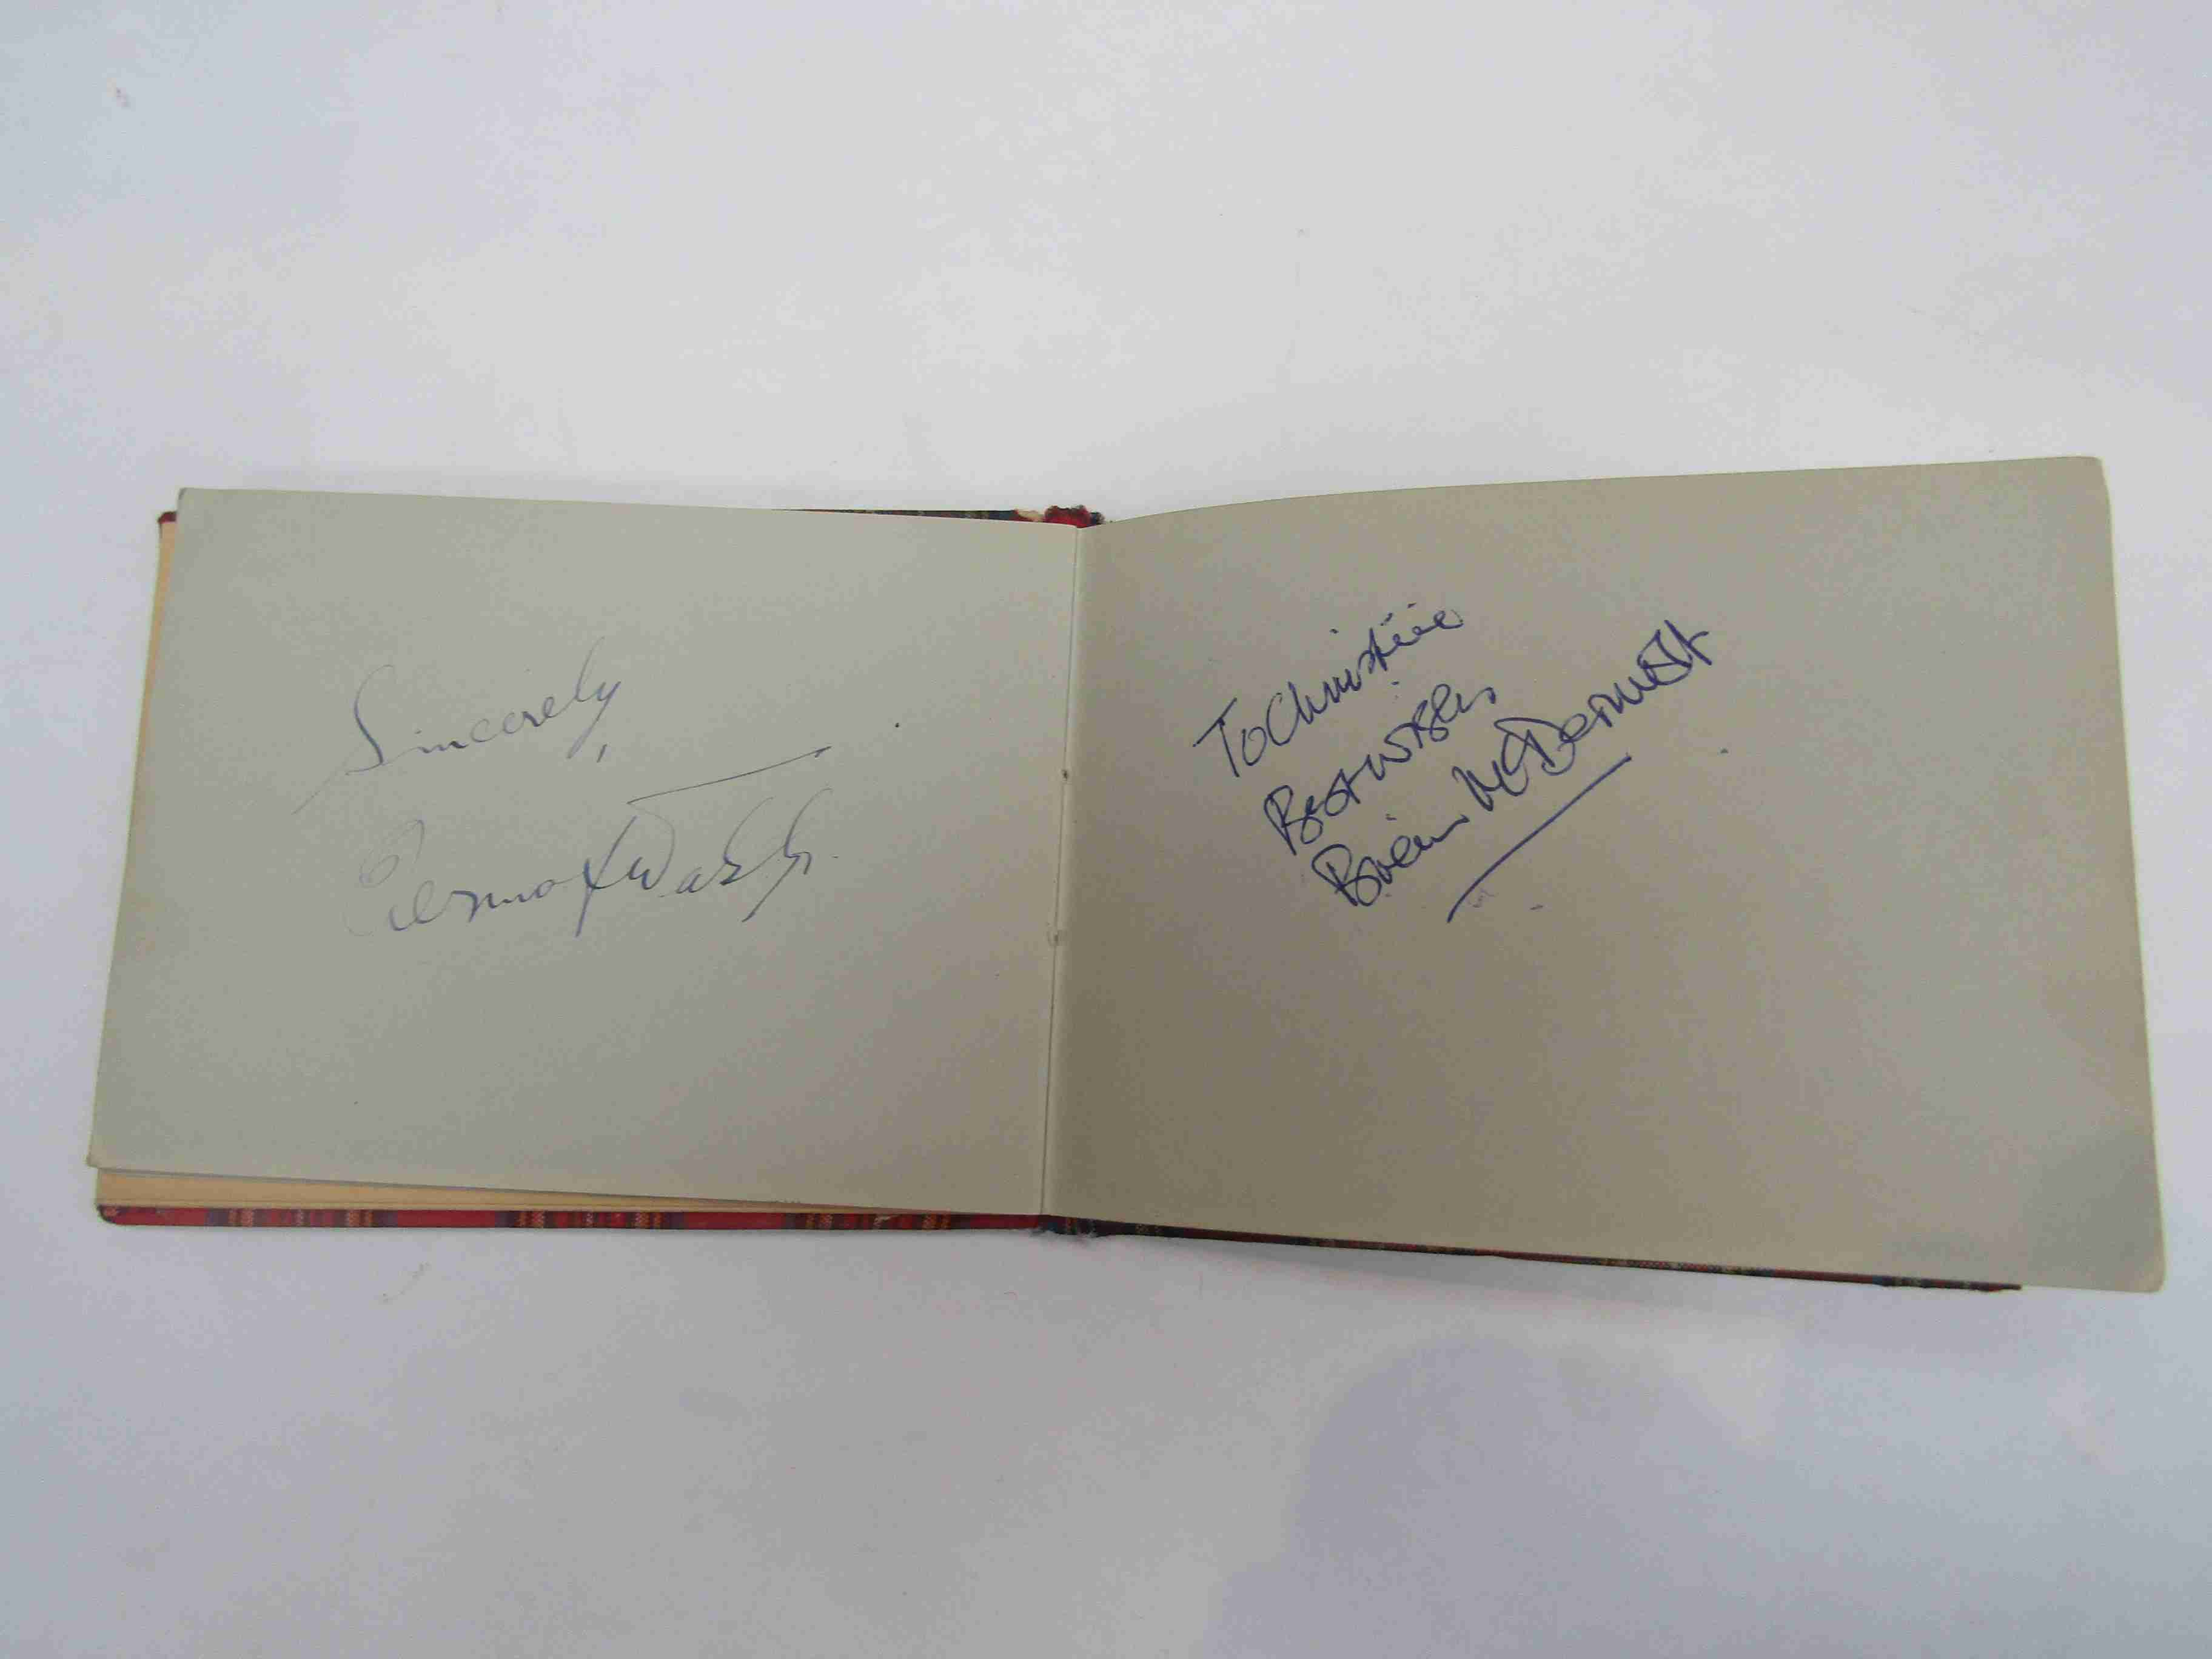 Two 1950s/60s autograph books containing autographs by Benny Hill, Honor Blackman, Barbara Shelley, - Image 23 of 34